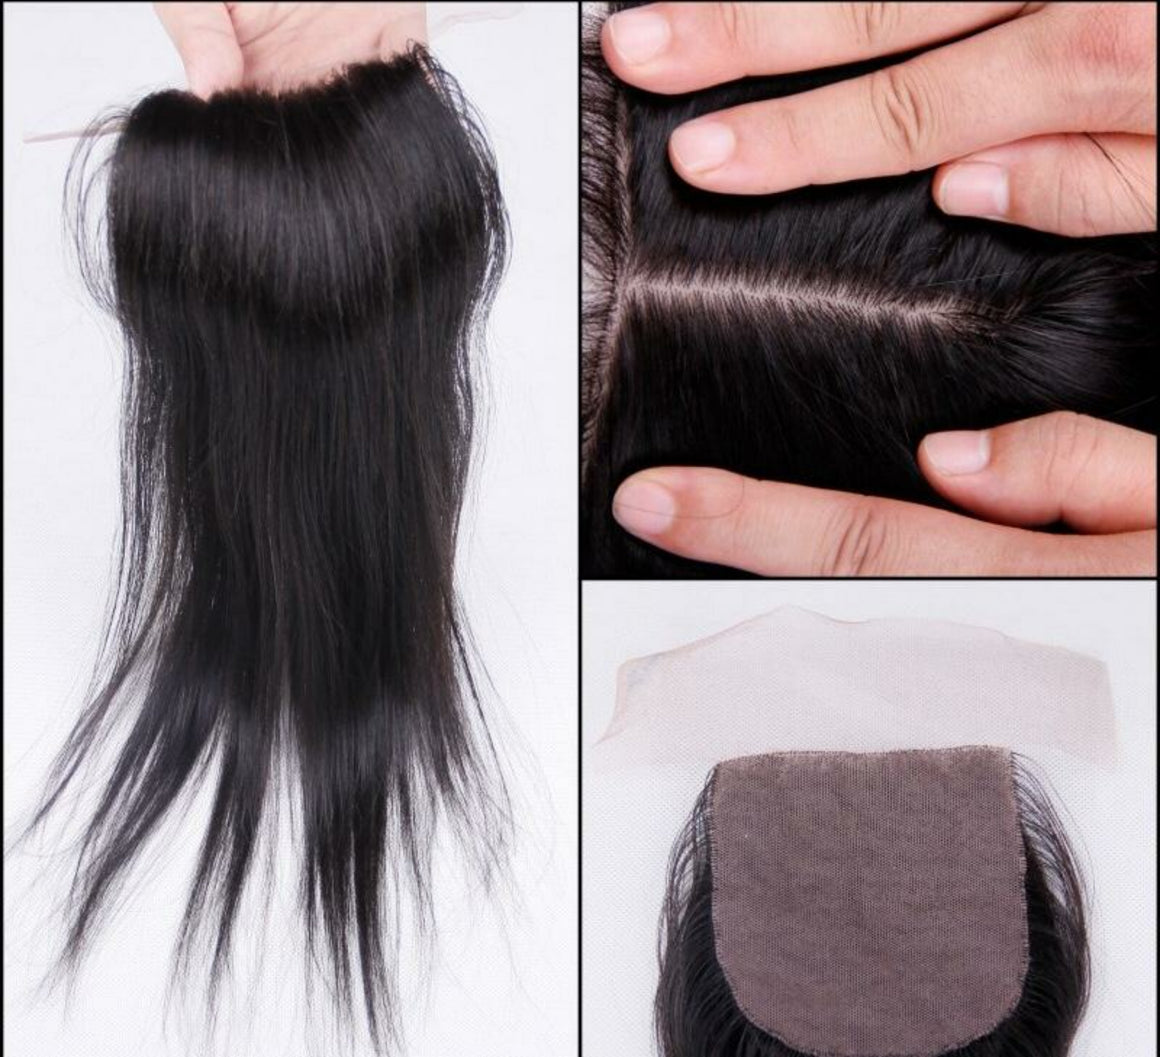 4 By 4 Silk Base Straight Three Part, Middle Part, and Free Part closure, pre-plucked, with baby hairs - mslhair